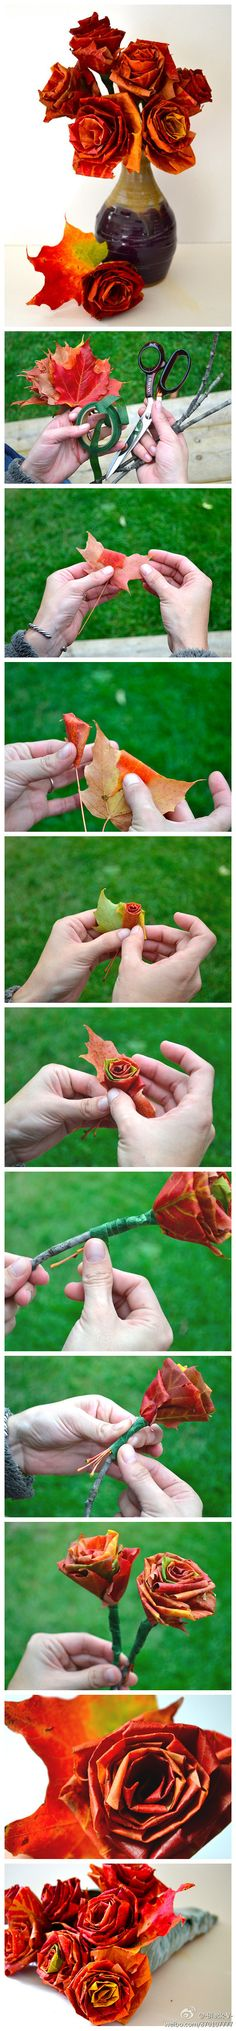 How to make Roses from Fall Leaves! Great Idea to use some of those Fallen leaves..Pretty & Genius!